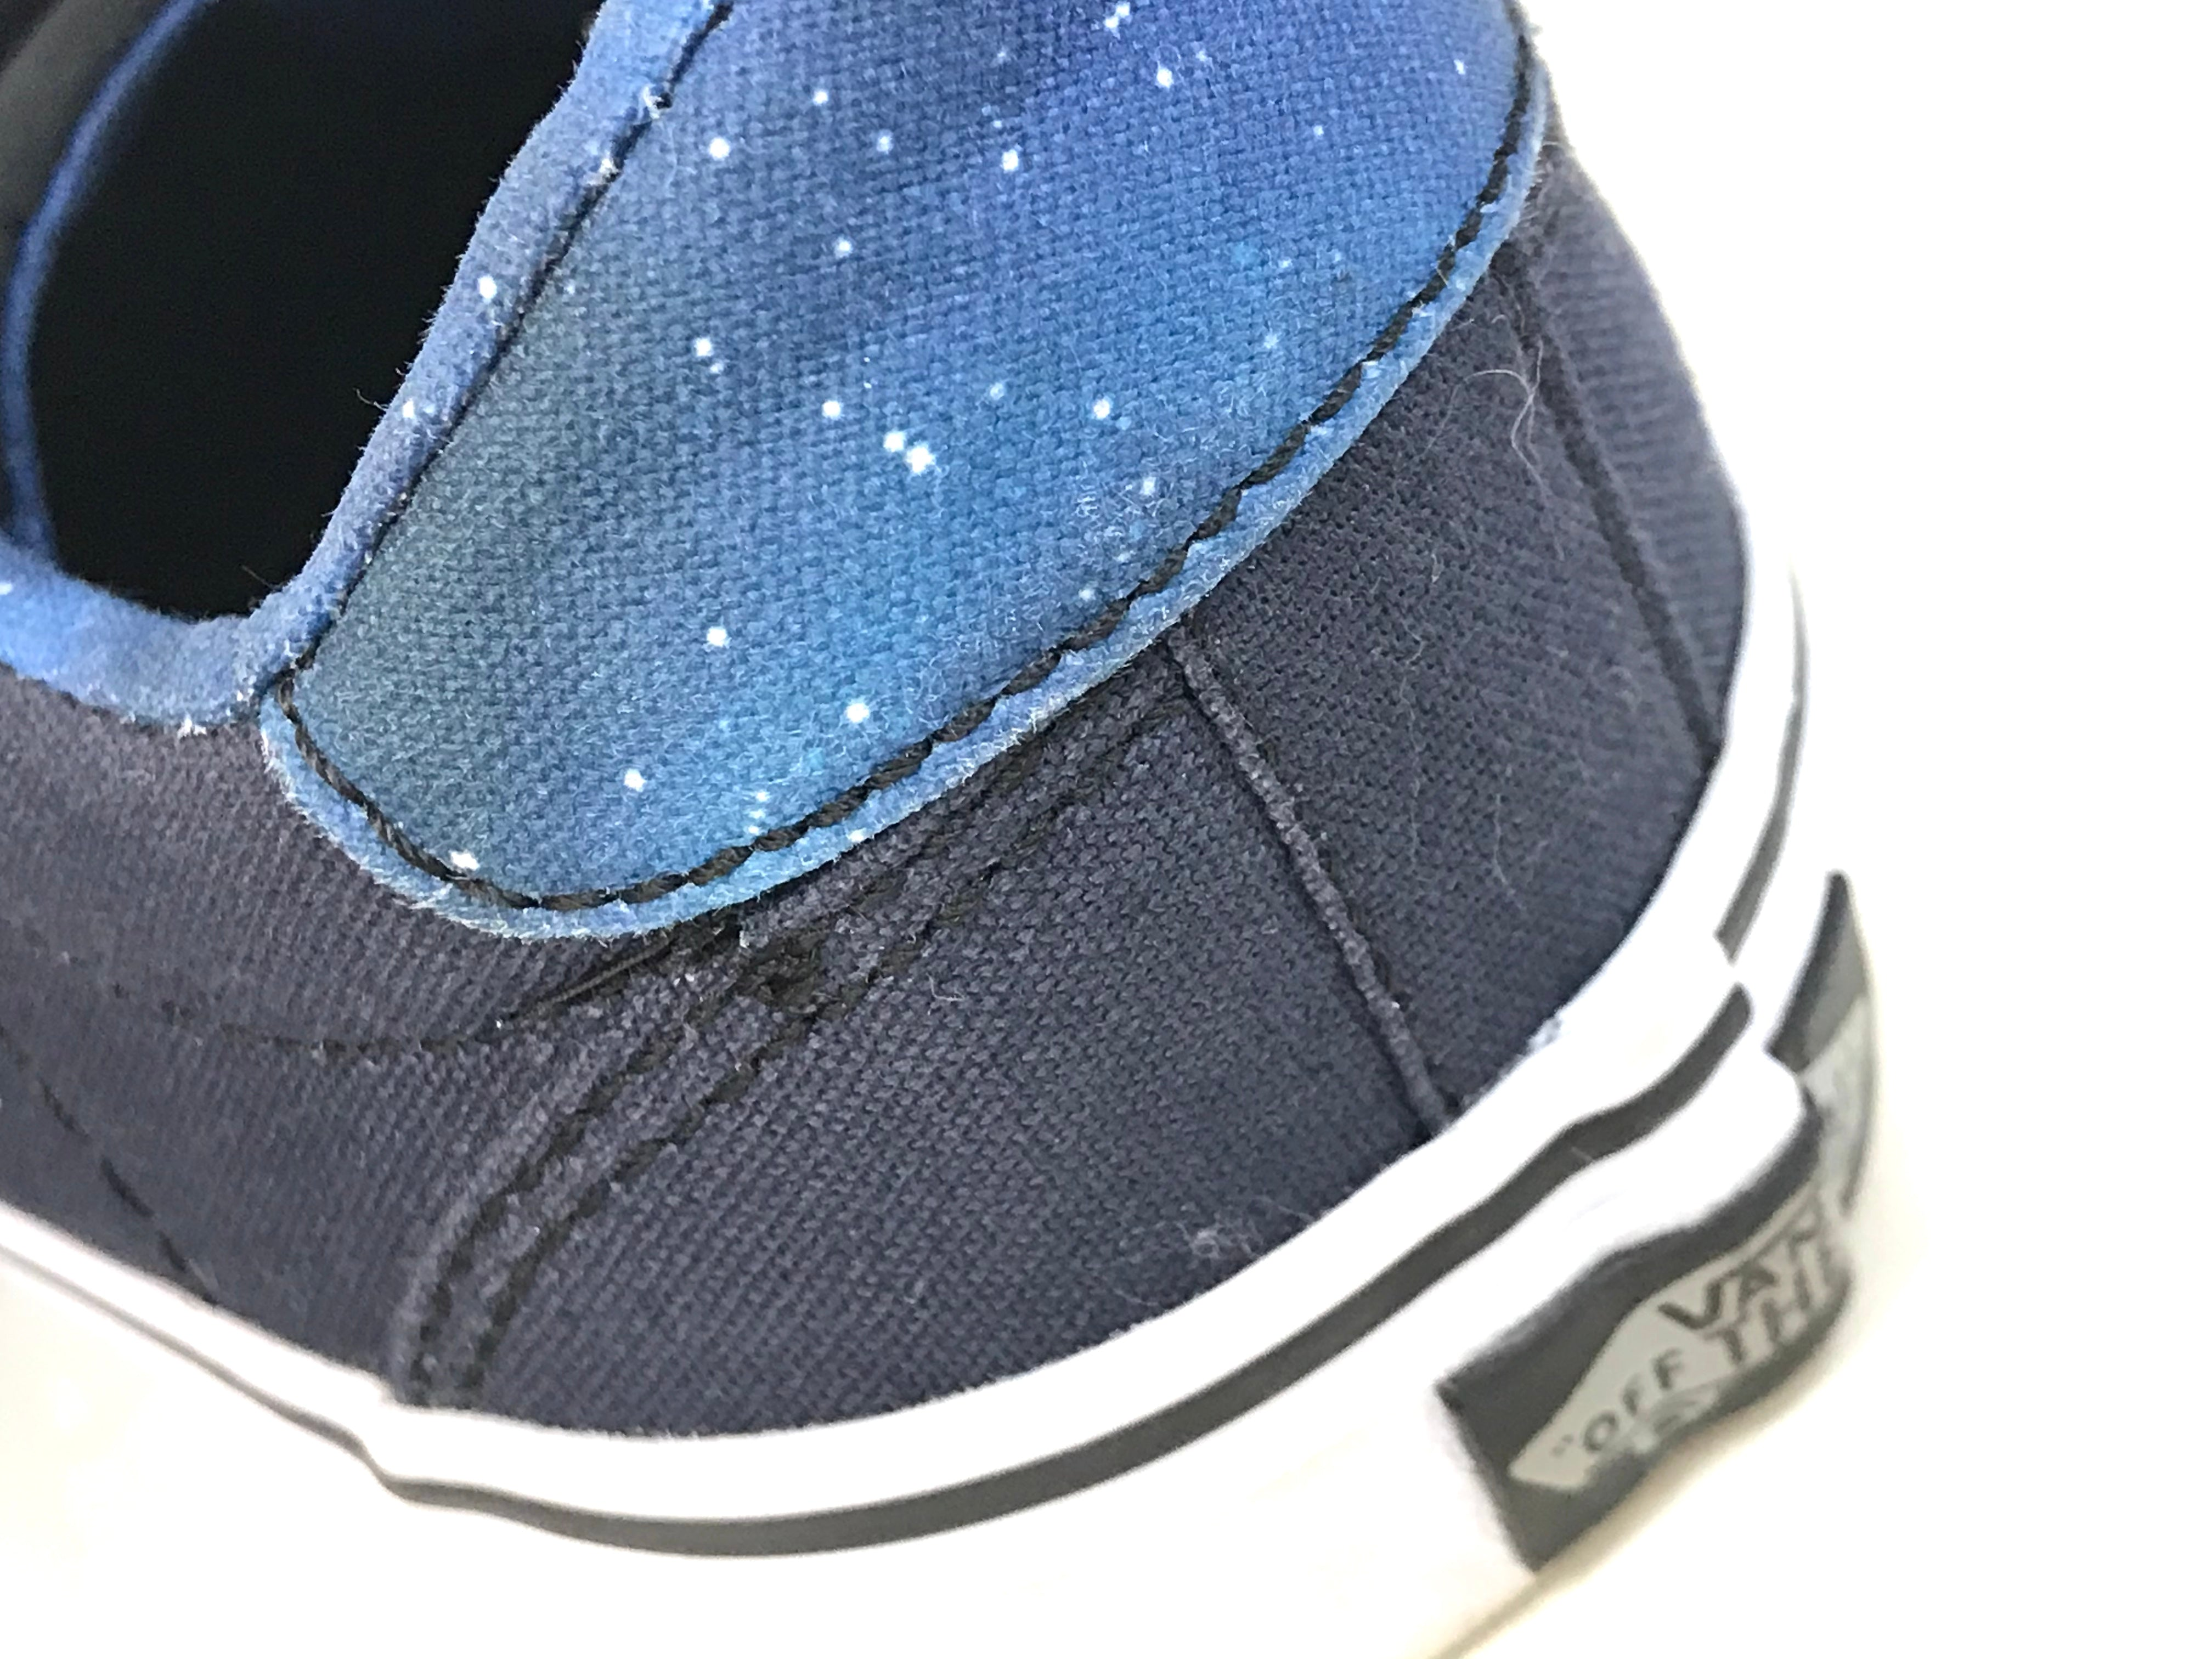 Photo #3 - BRAND: VANS <BR>STYLE: SHOES ATHLETIC <BR>COLOR: NAVY <BR>SIZE: 6 <BR>SKU: 262-26275-62214<BR>GENTLE WEAR SHOWS <BR>FINAL SALE - AS IS